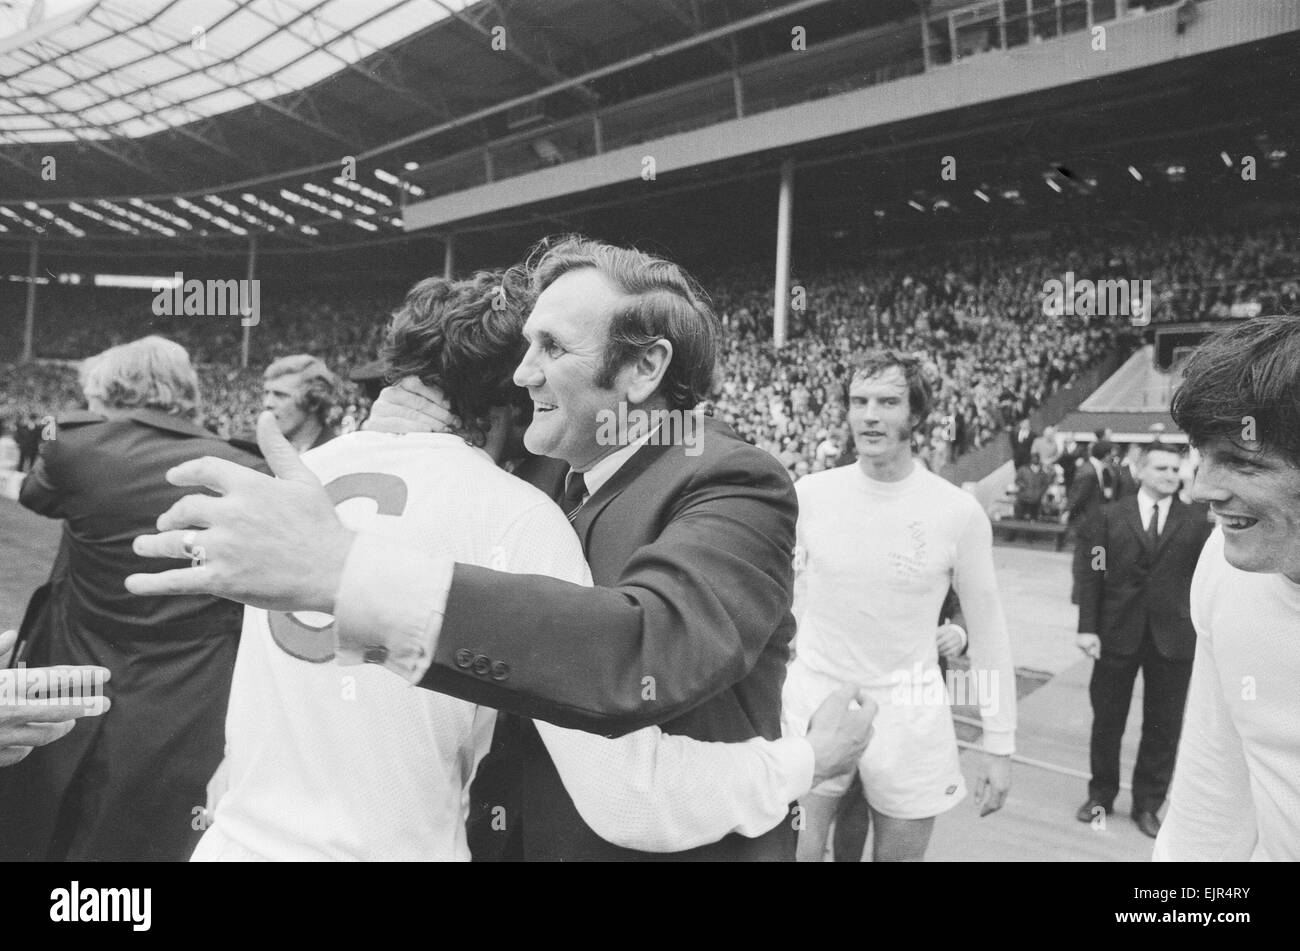 F.A. Cup Final 1972 May 6th 1972 Leeds United Manager Don Revie congratulates his team after their one nil victory - Stock Image